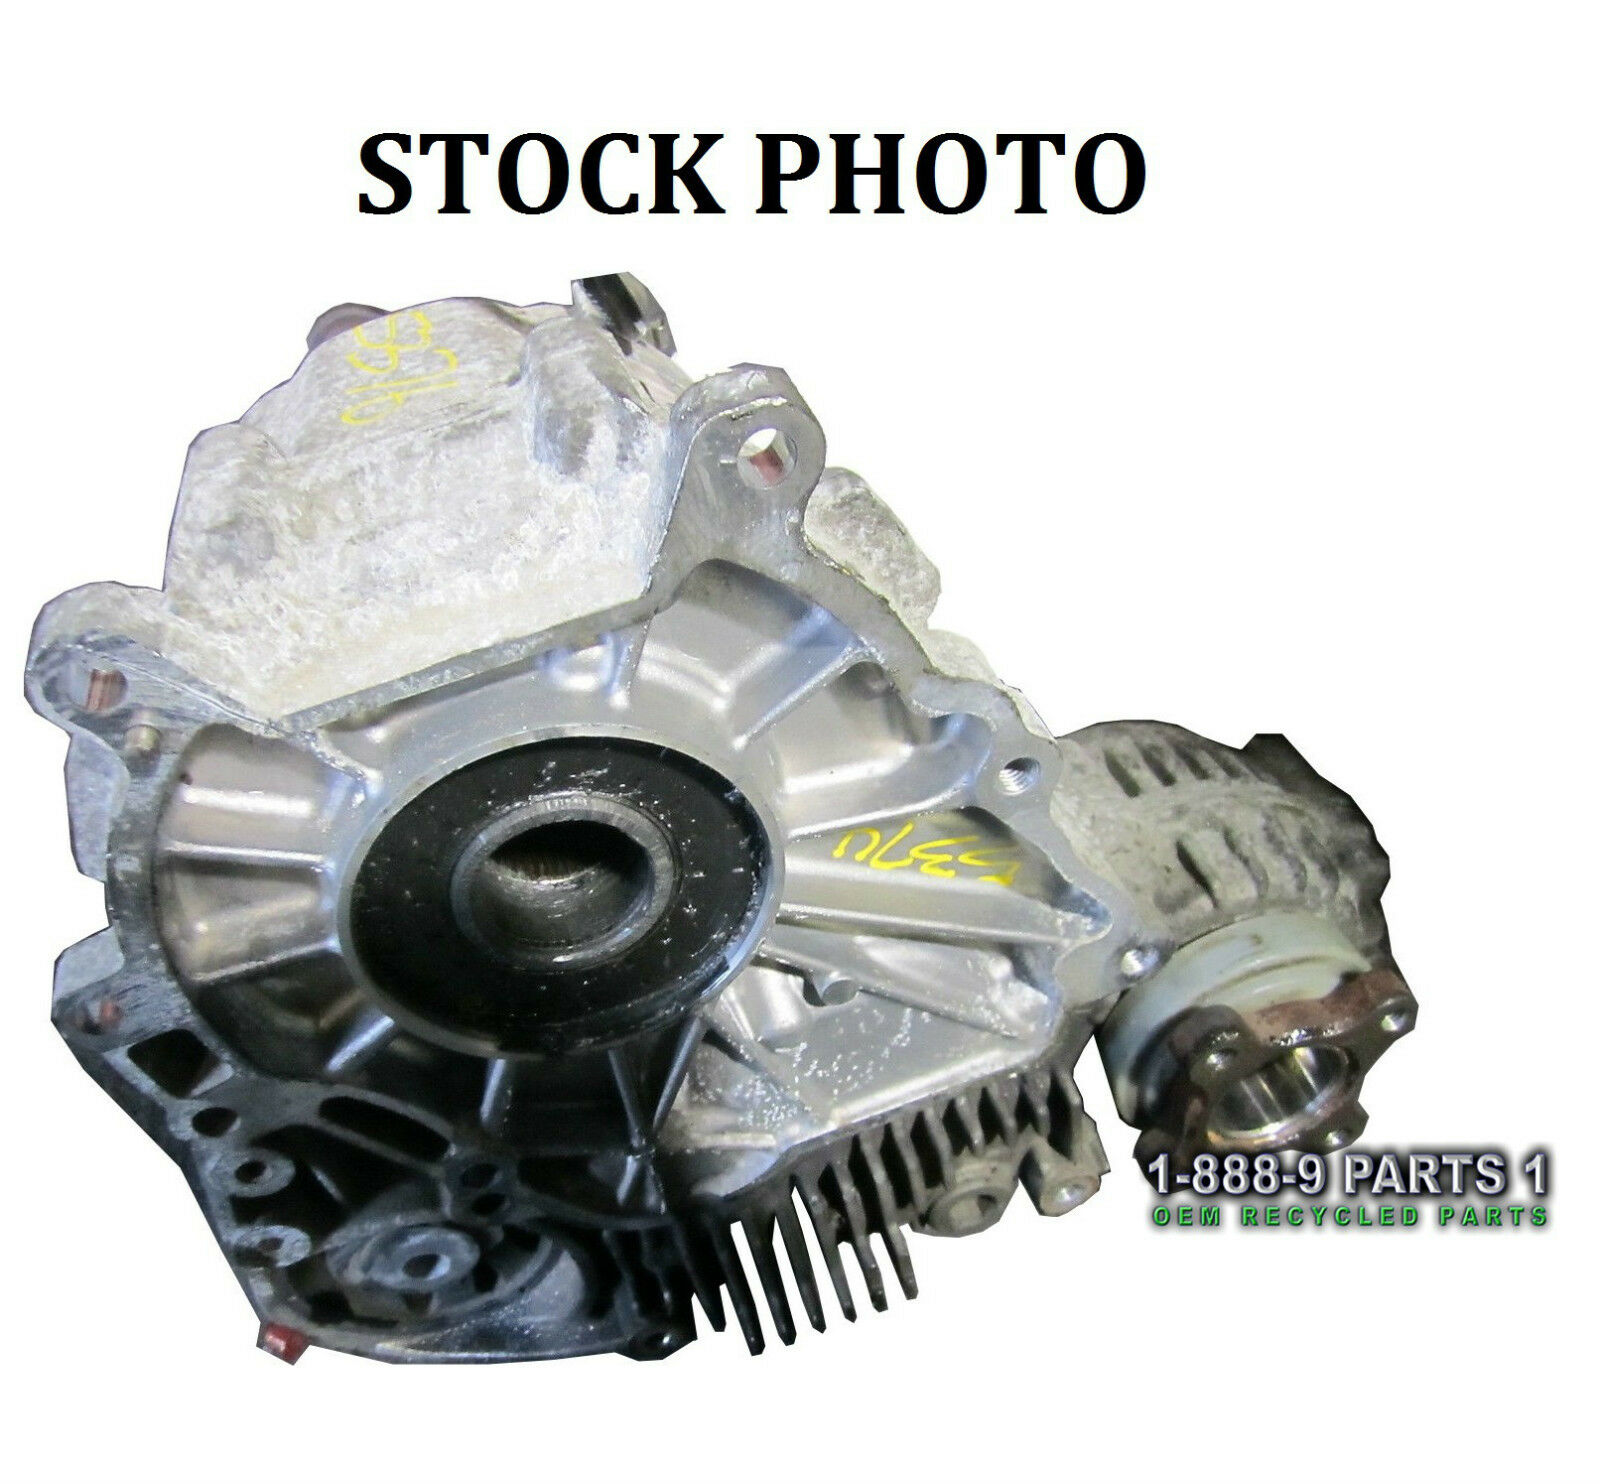 Bmw Xdrive Transfer Case: Used Transfer Cases For The BMW X3